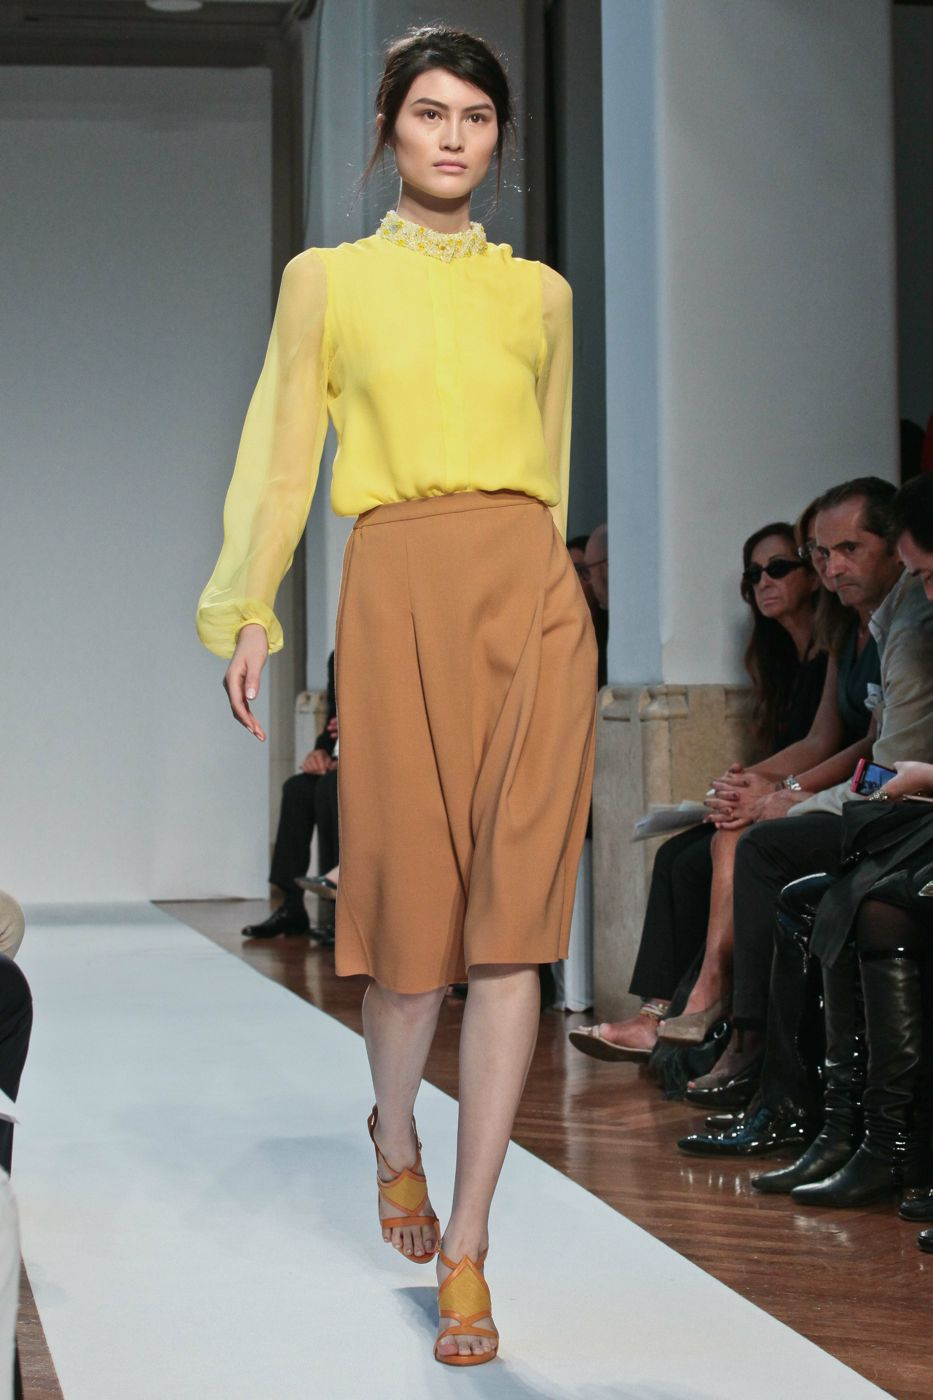 Mila Schon S/S 2012 - Milano Fashion Week